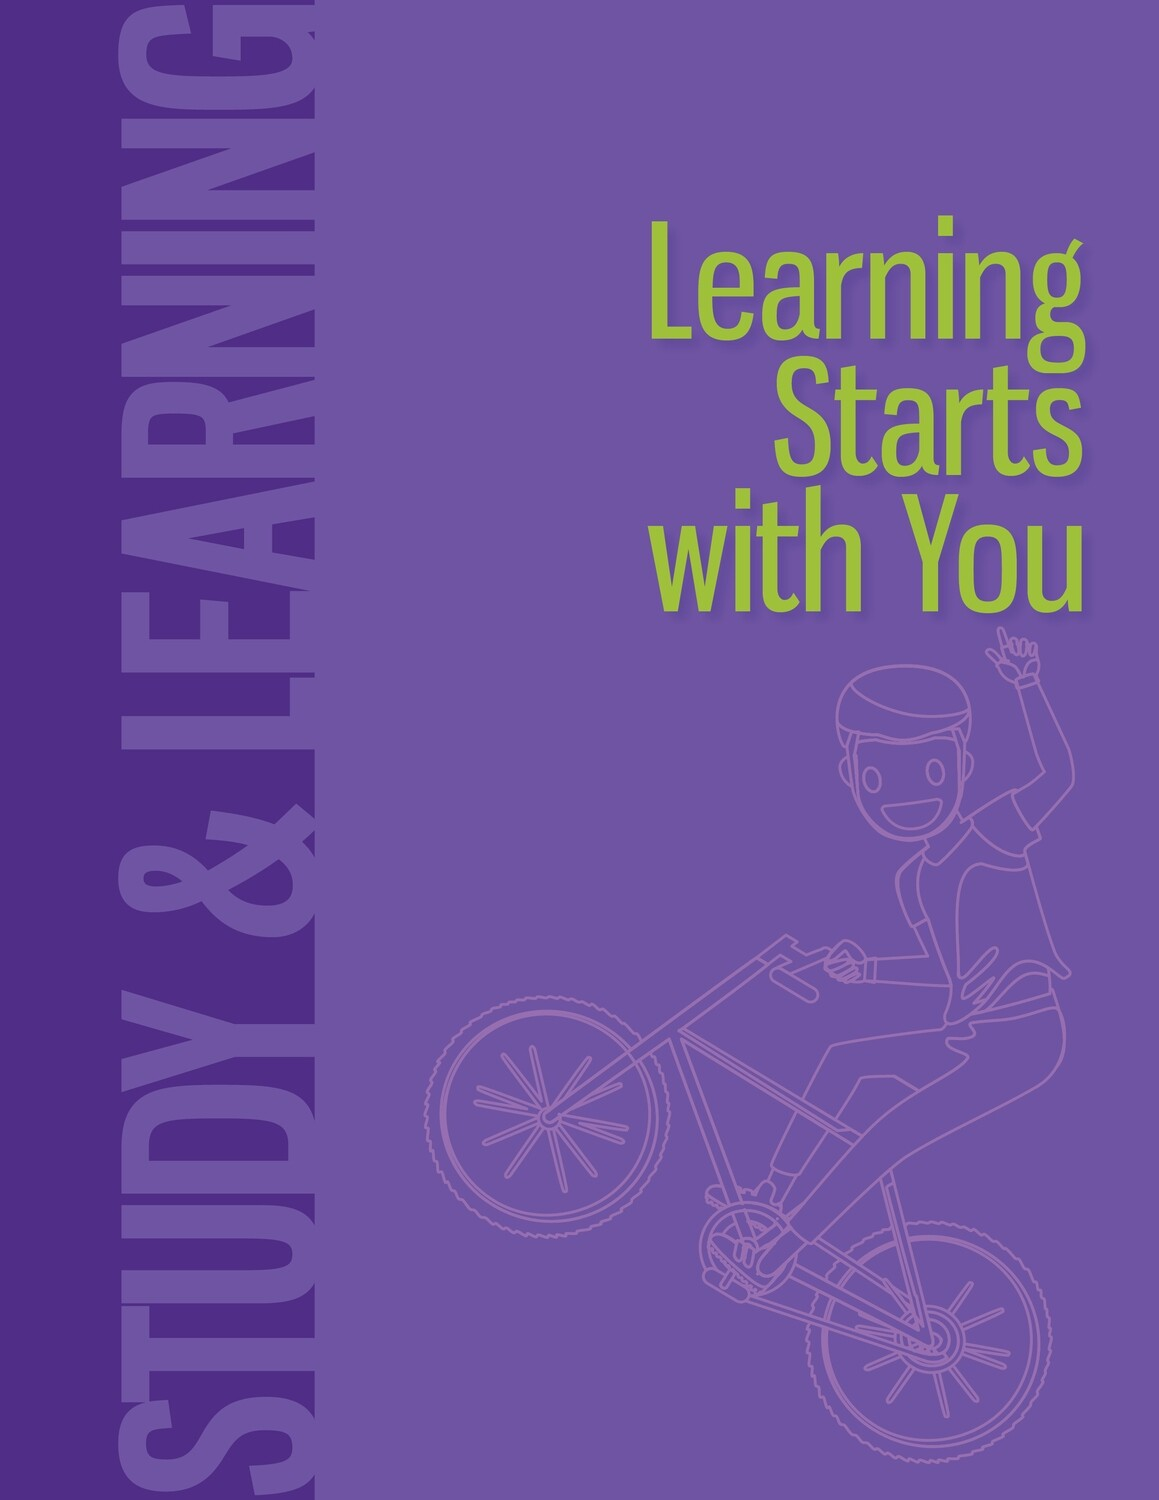 Learning Starts with You - Free Download!